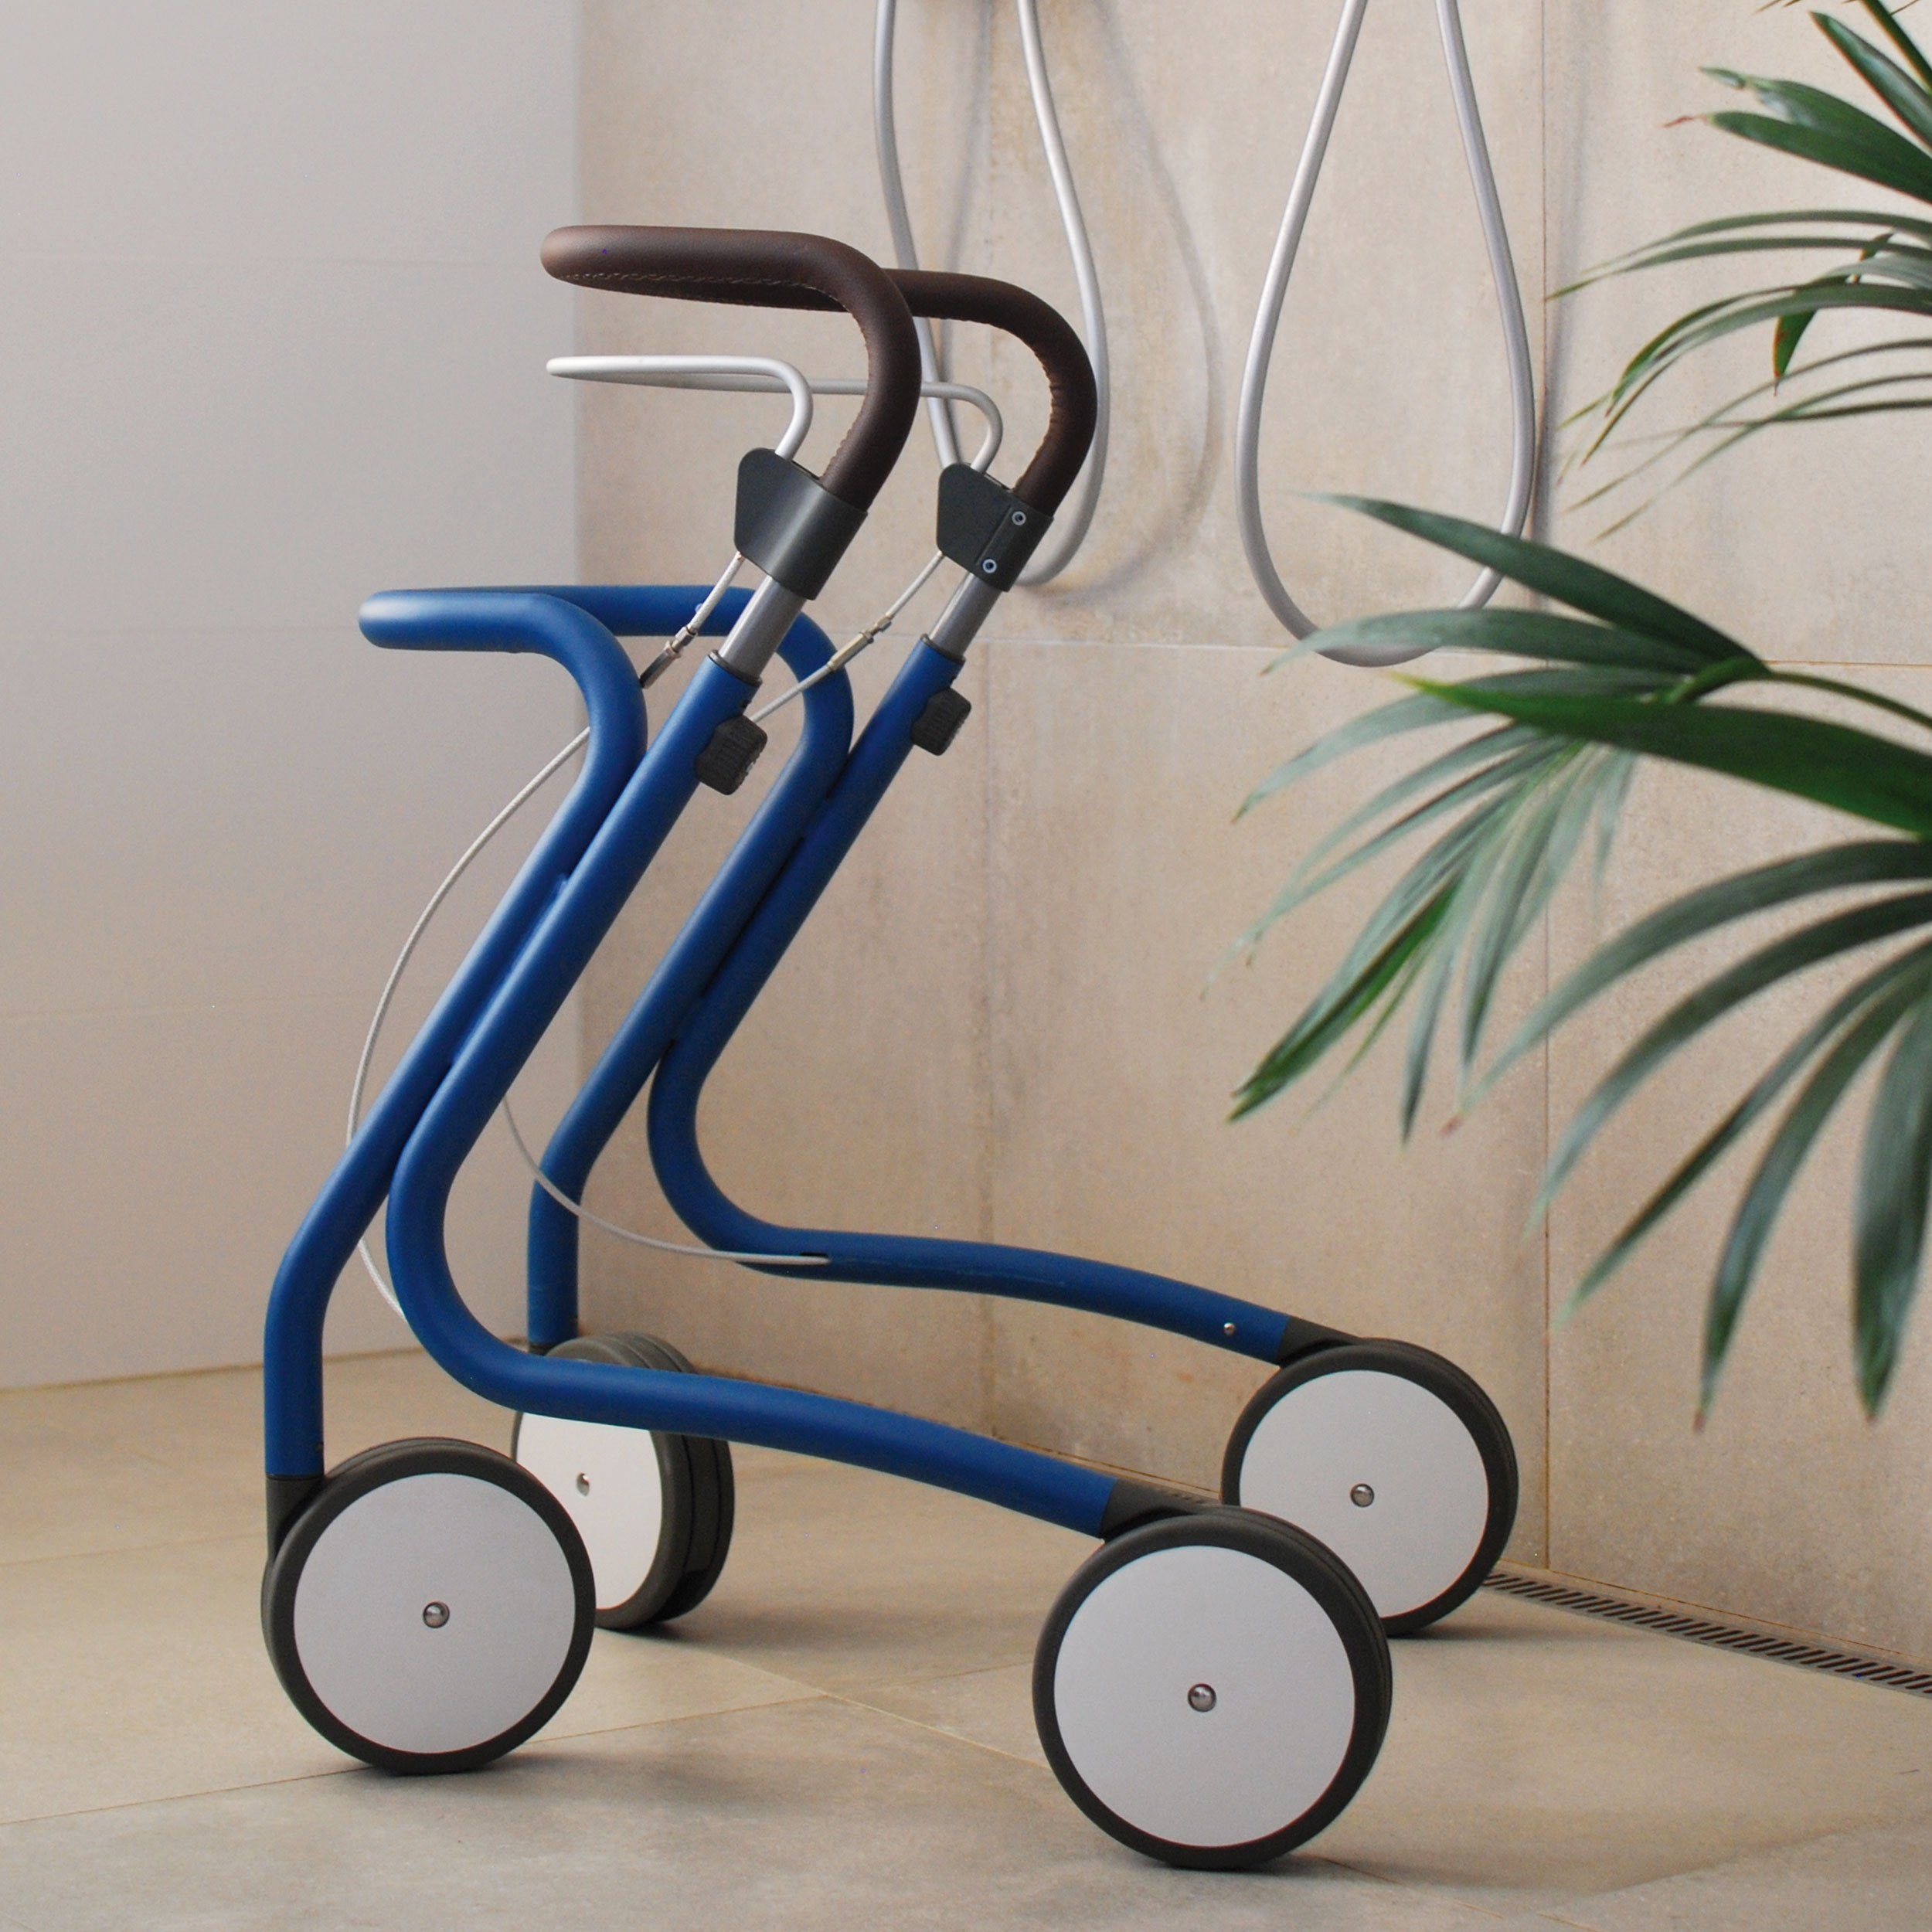 Scandinavian Mist Rollator byACRE - close-up in perspective in a bathroom setting